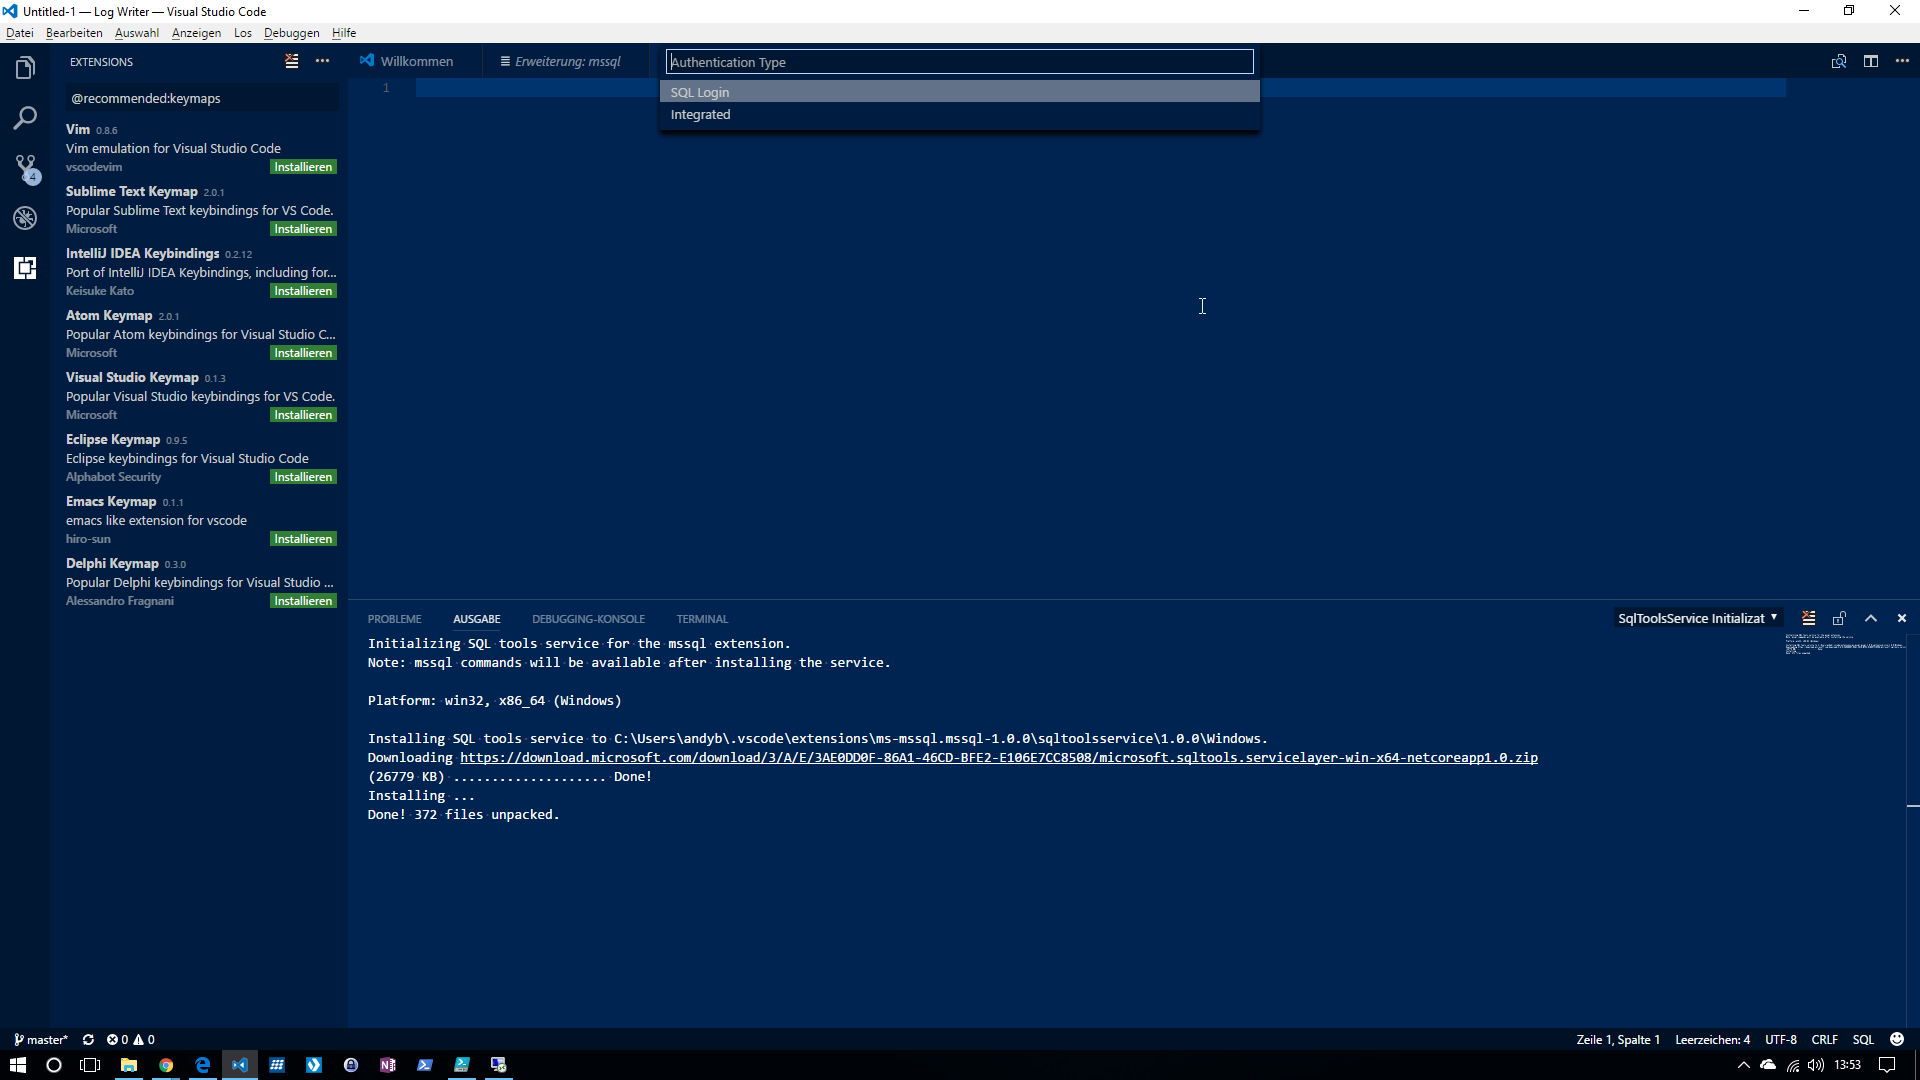 azure_sql_create_conprofile_04